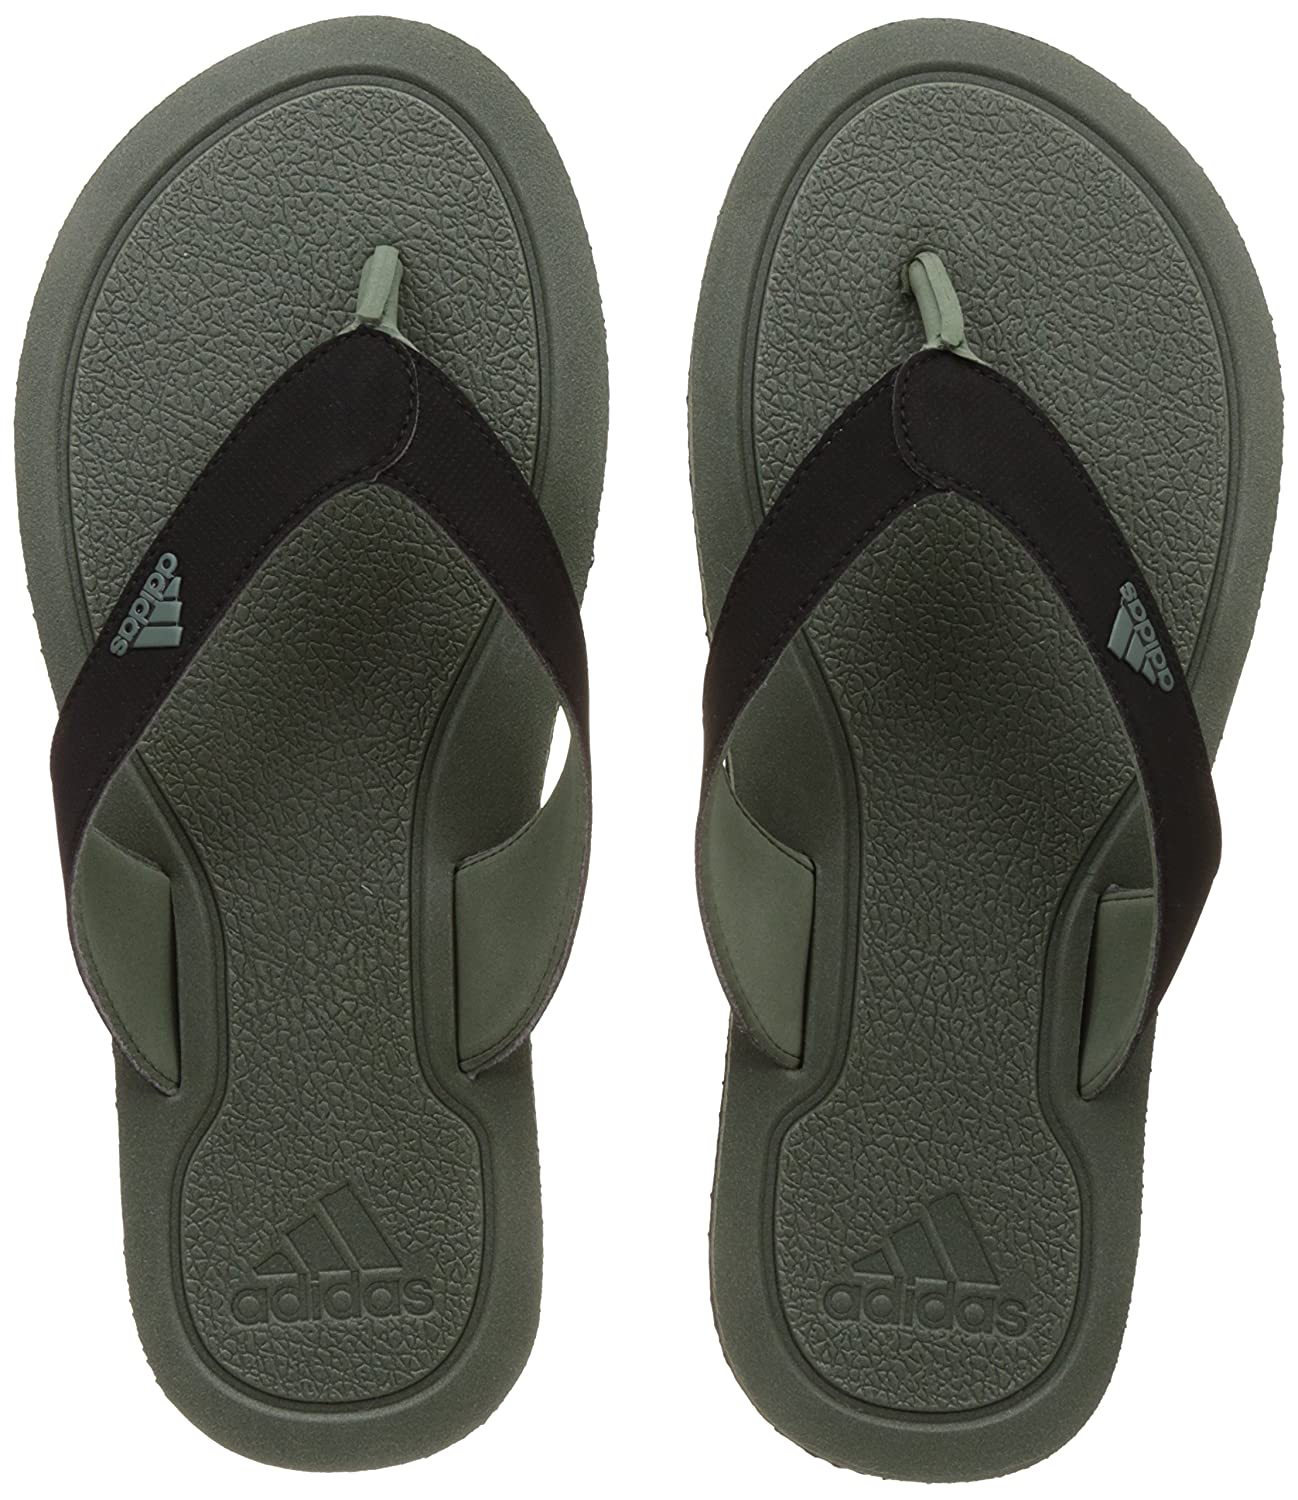 d9723638f180 Adidas Men s Stabile Tragrn and Cblack Flip-Flops and House Slippers - 10  UK India (44.67 EU)  Buy Online at Low Prices in India - Amazon.in